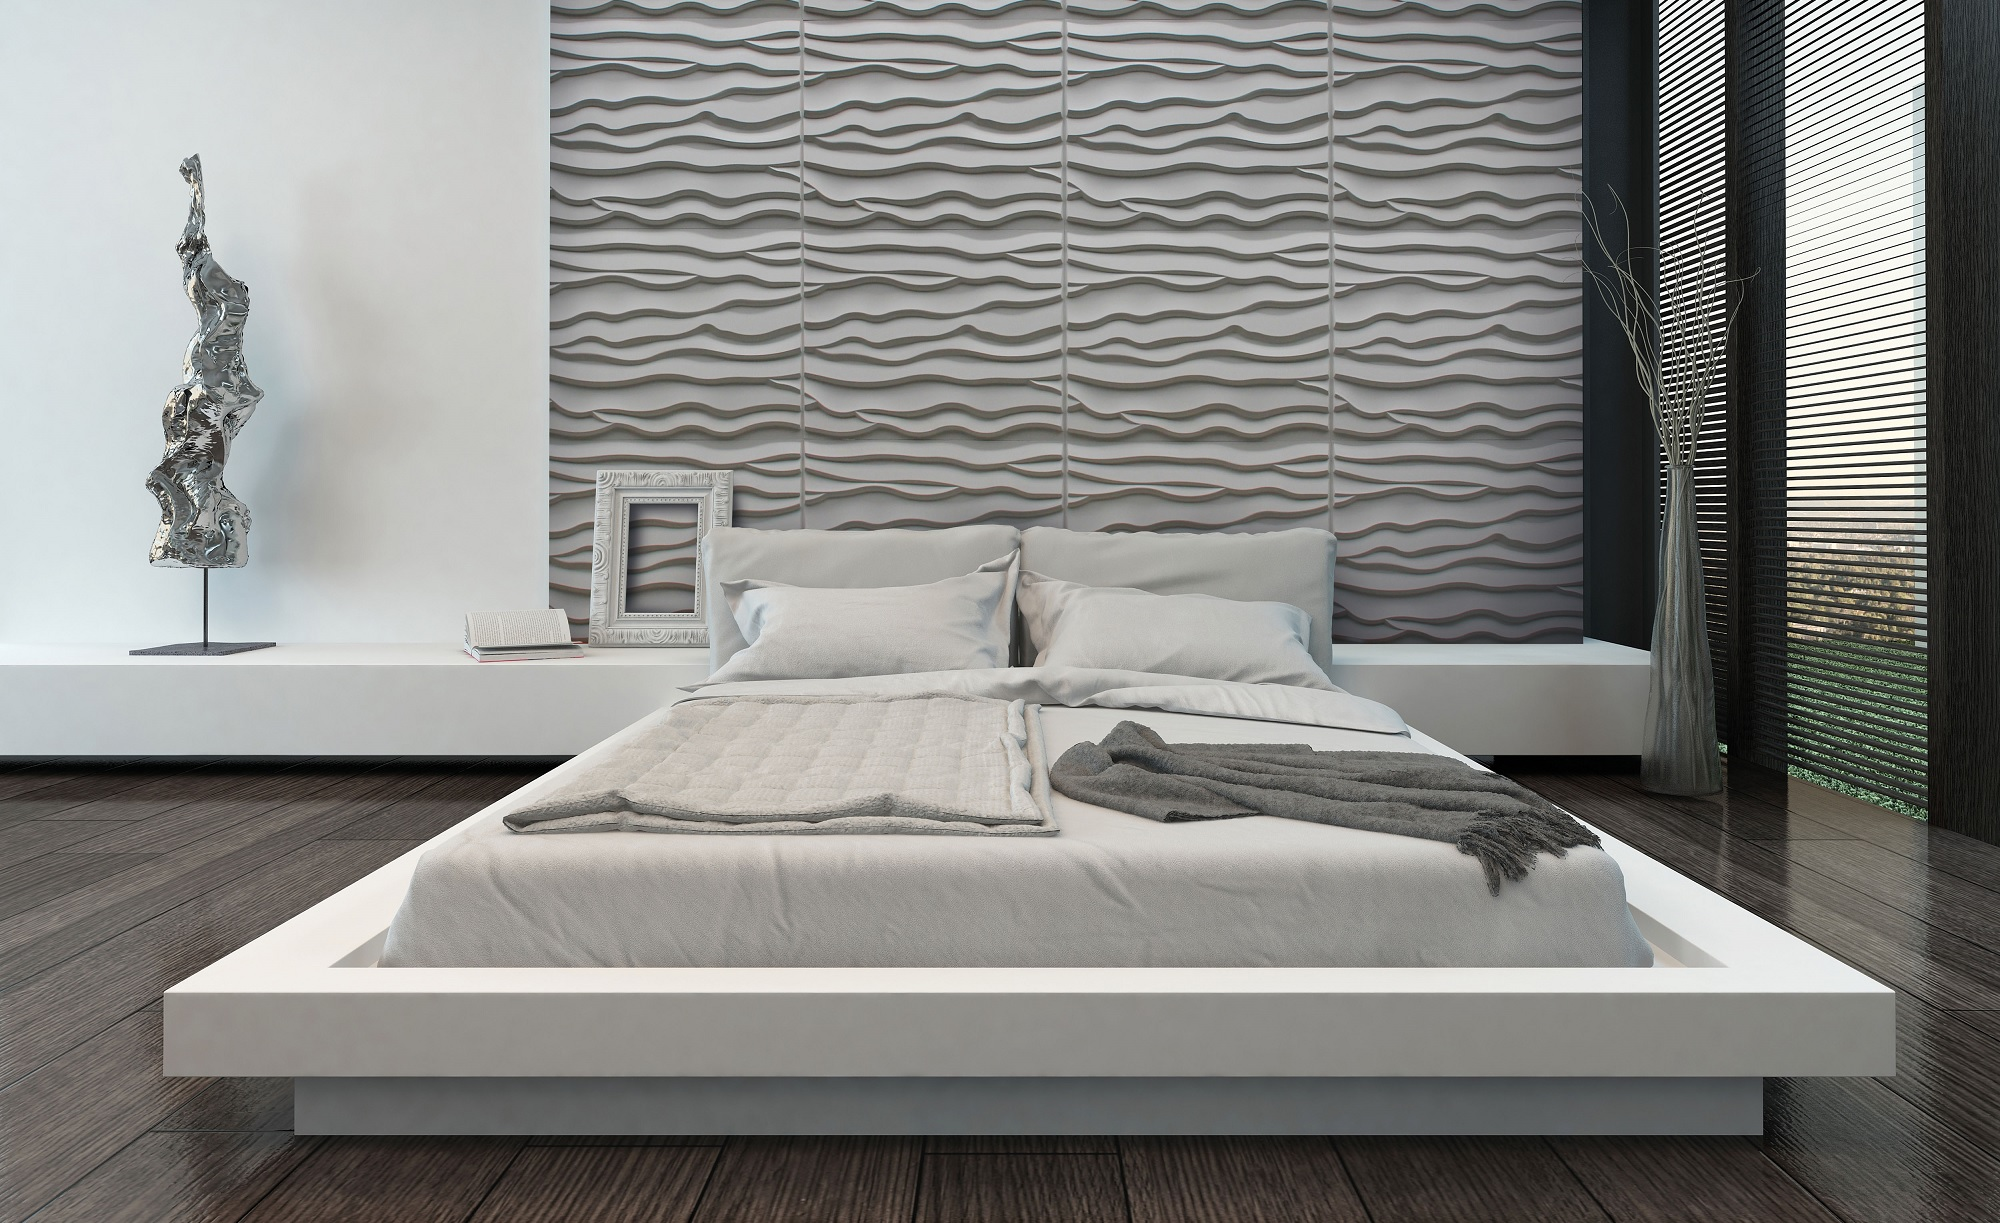 3d-decorative-wall-panels.jpg